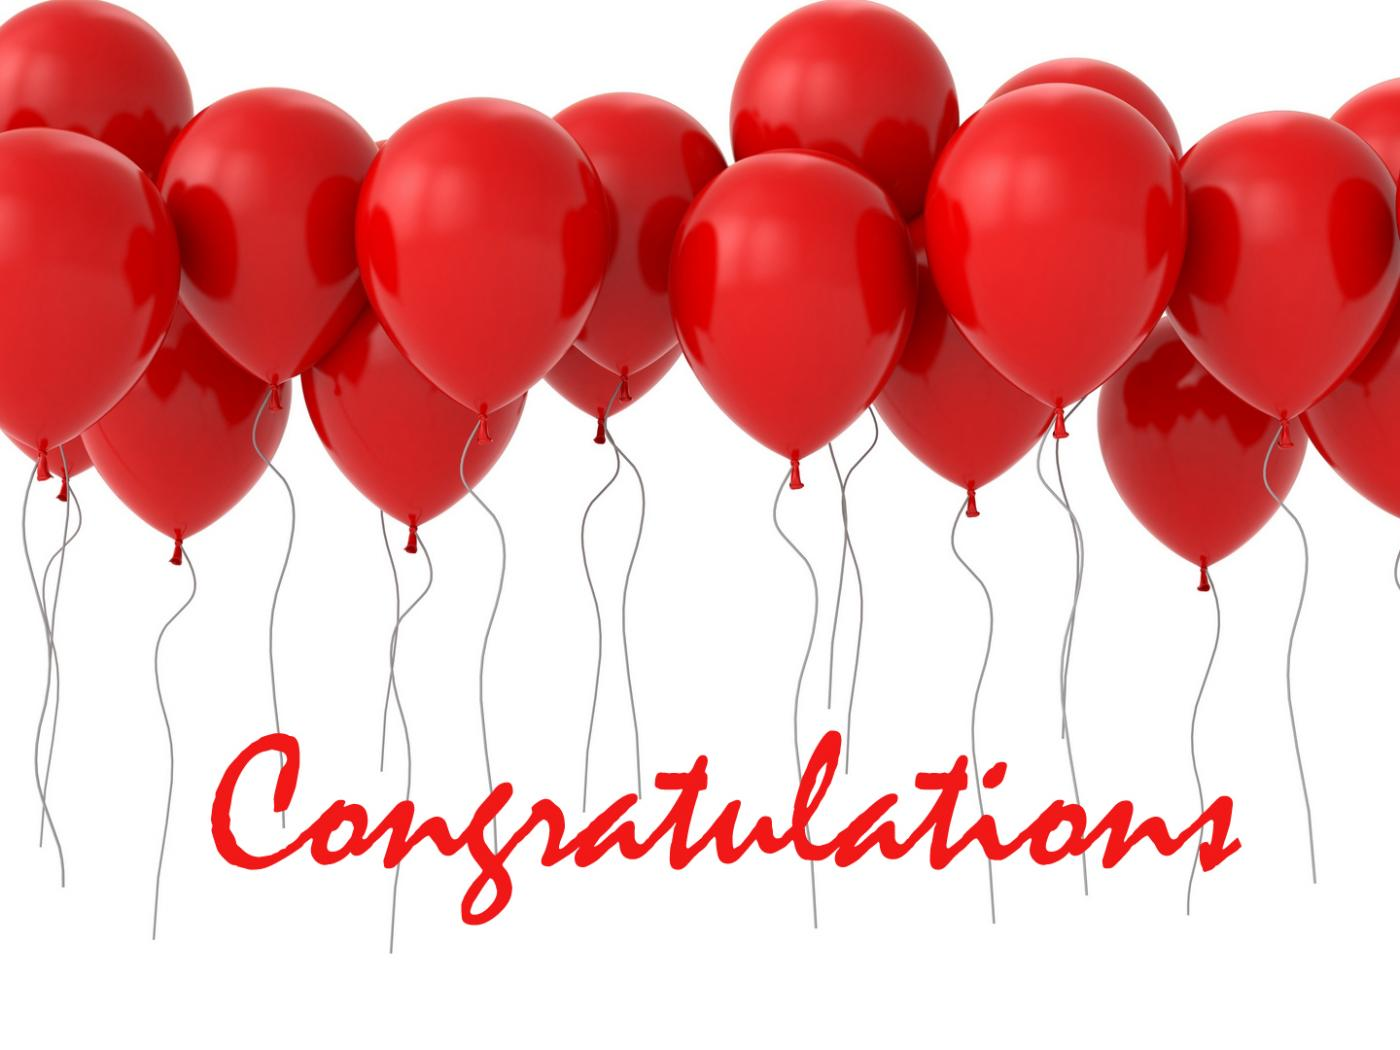 congratulation images free with balloons